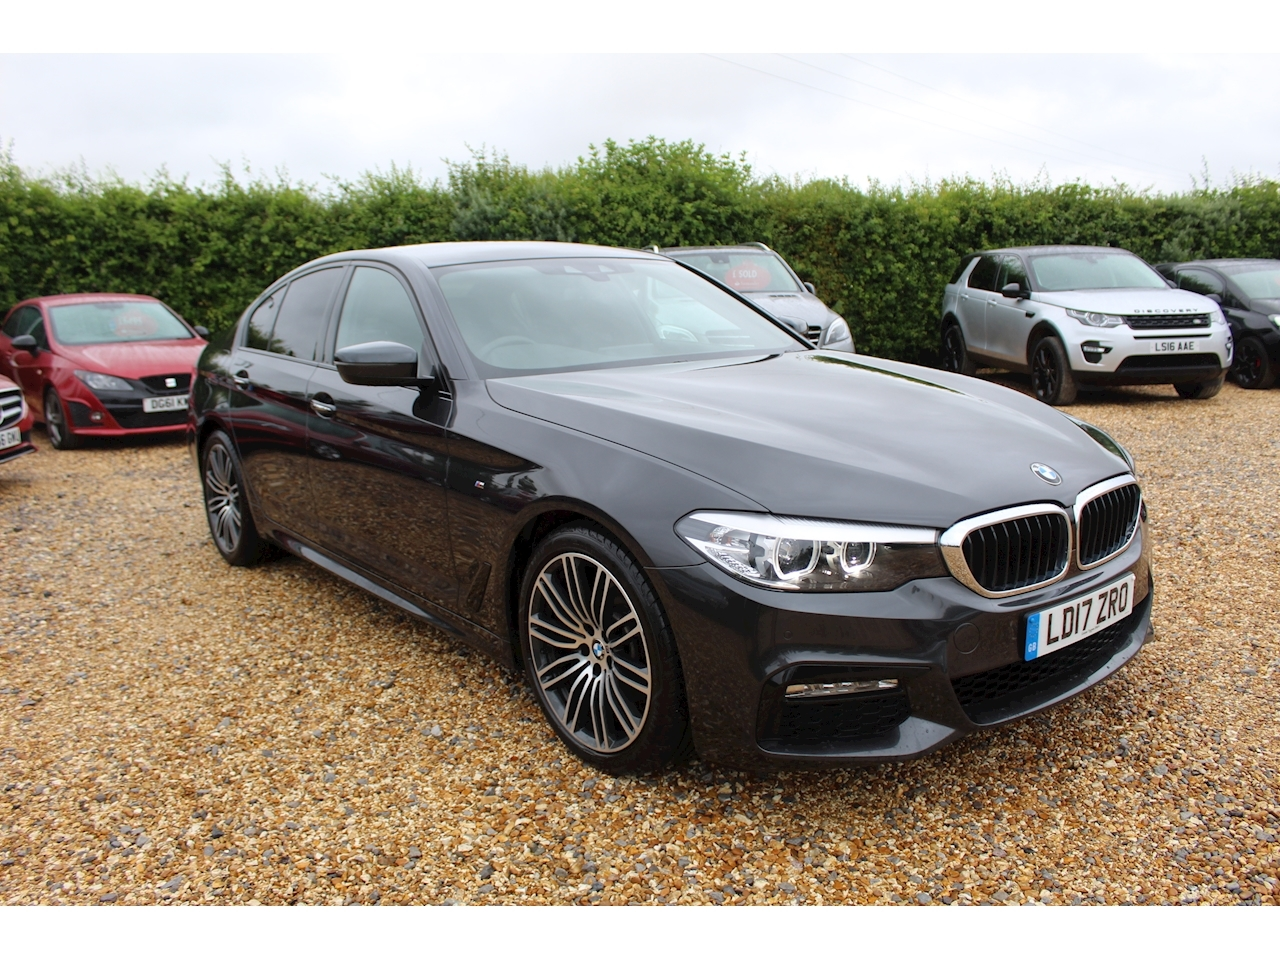 BMW 5 Series 520D Xdrive M Sport Saloon 2.0 Automatic Diesel